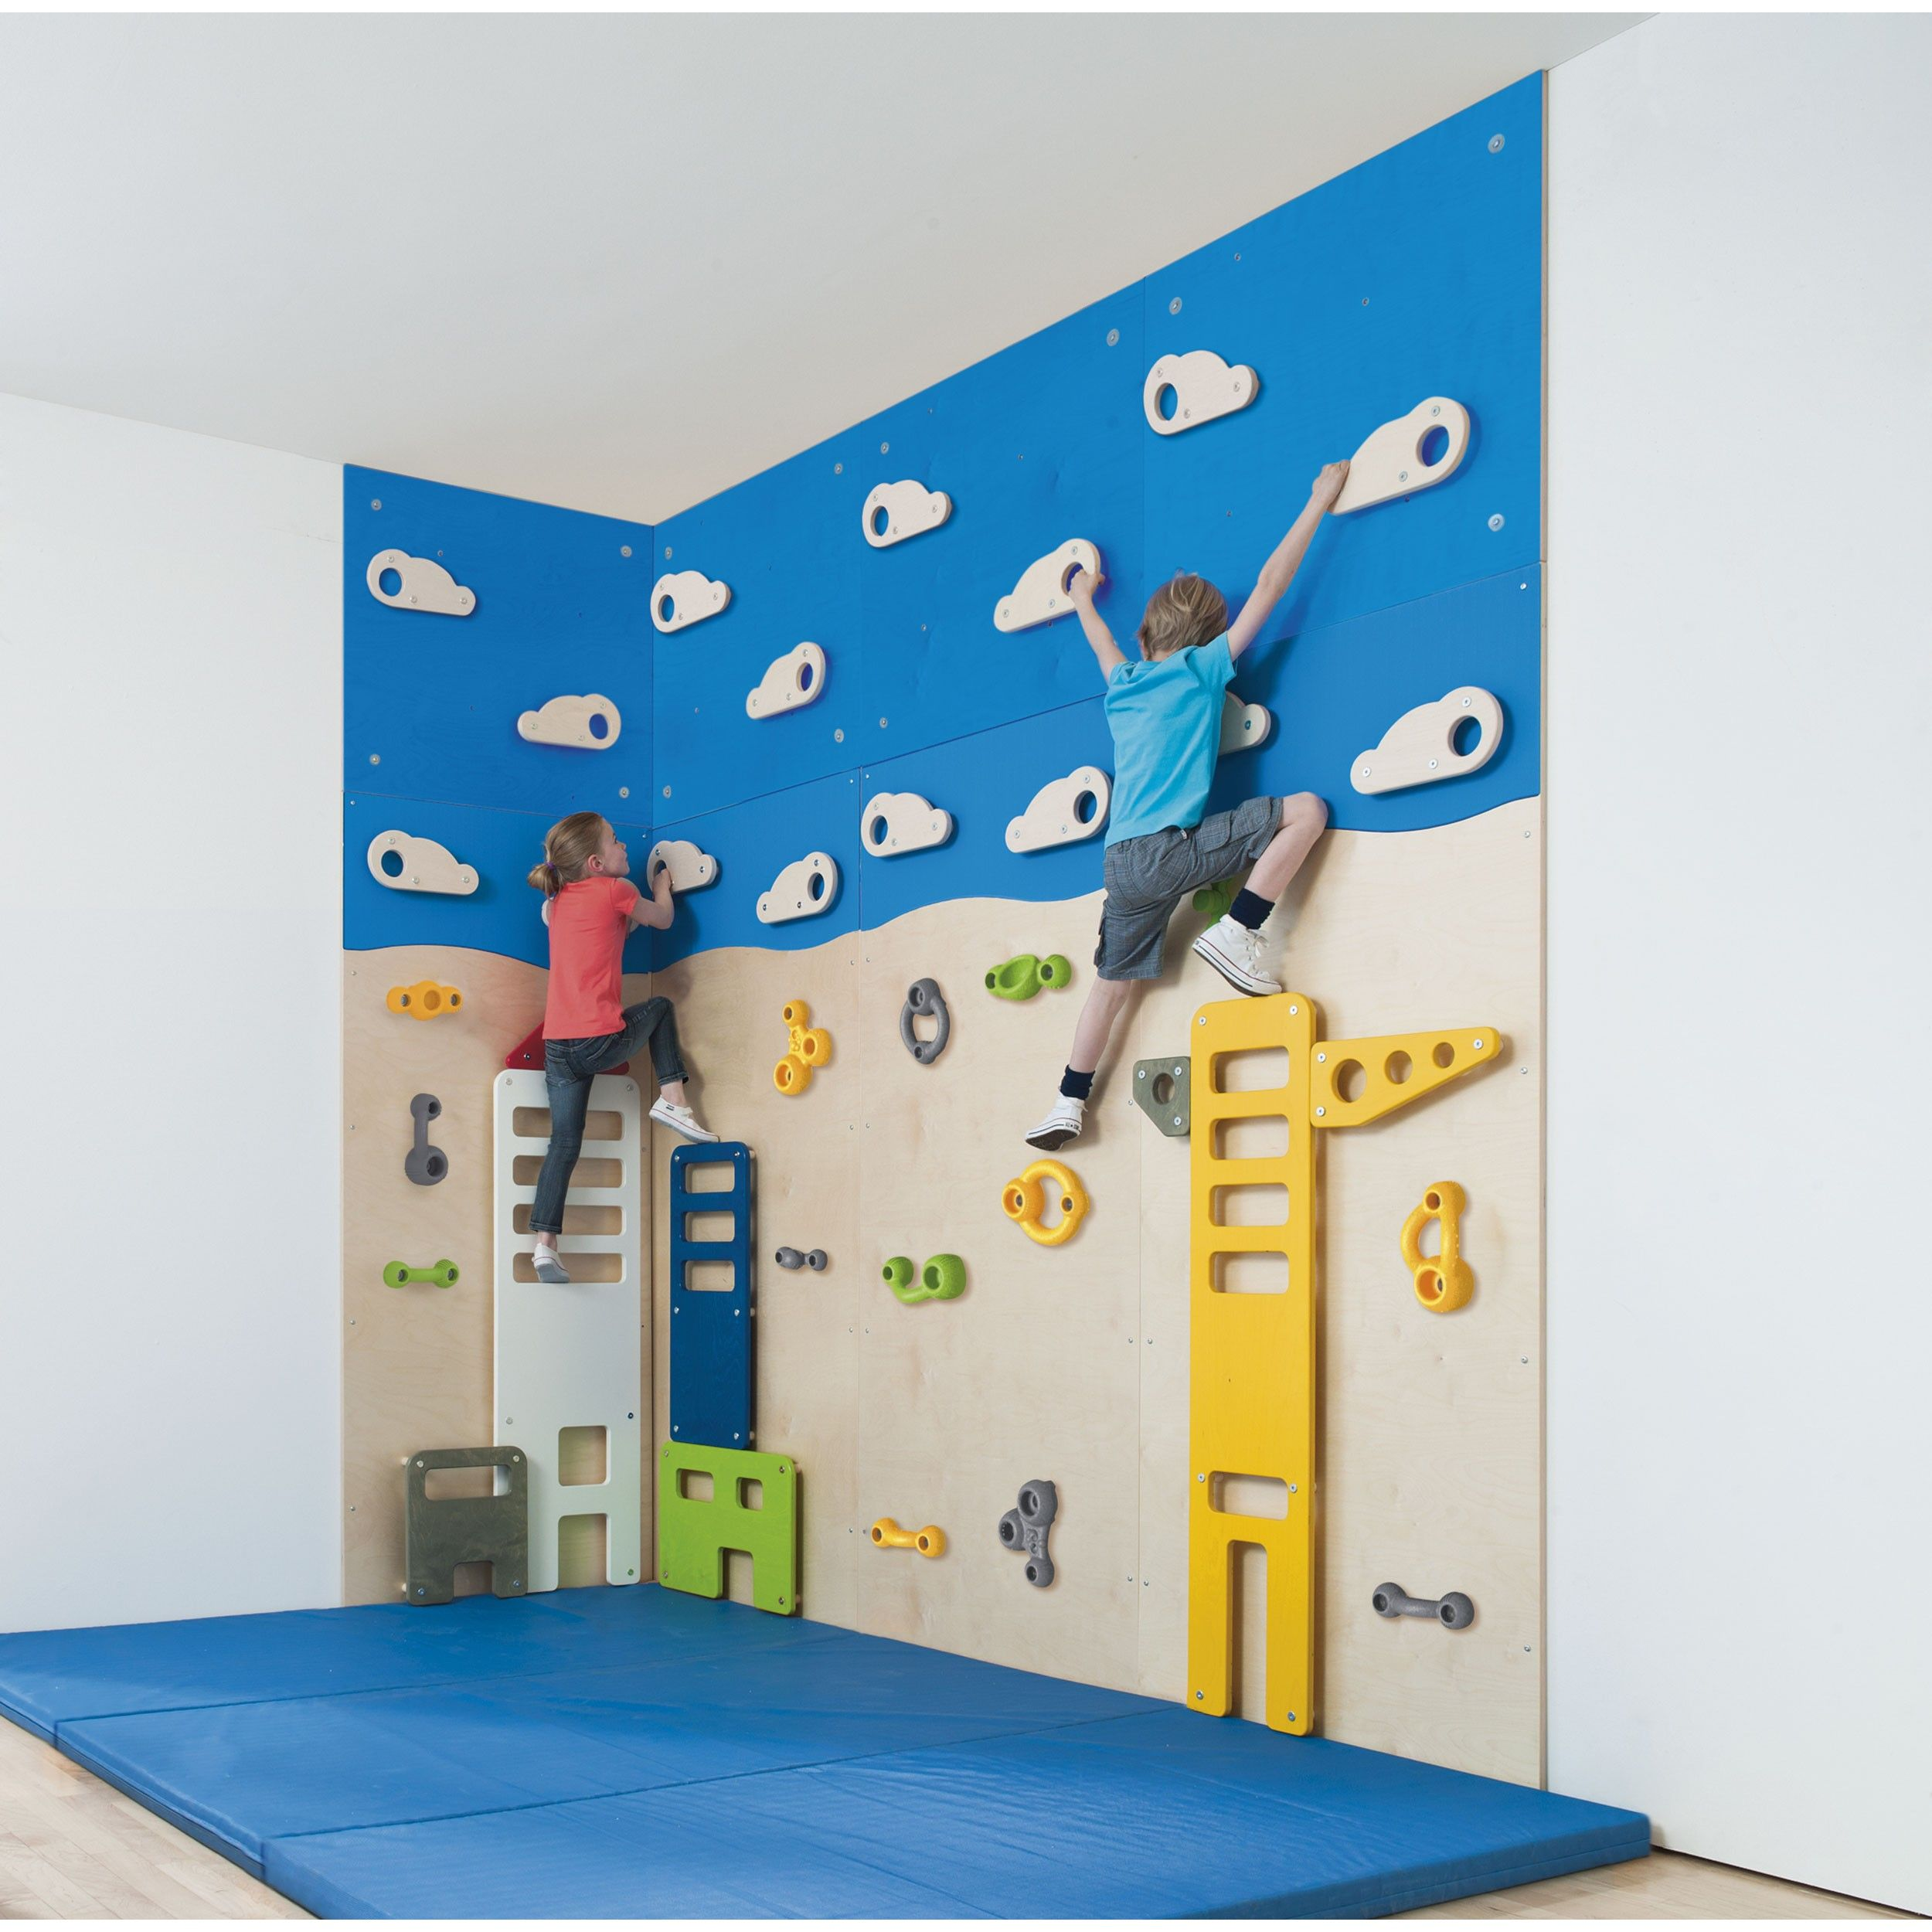 Kids Rooms Climbing Walls And Contemporary Schemes: Klatreveggen Kranen